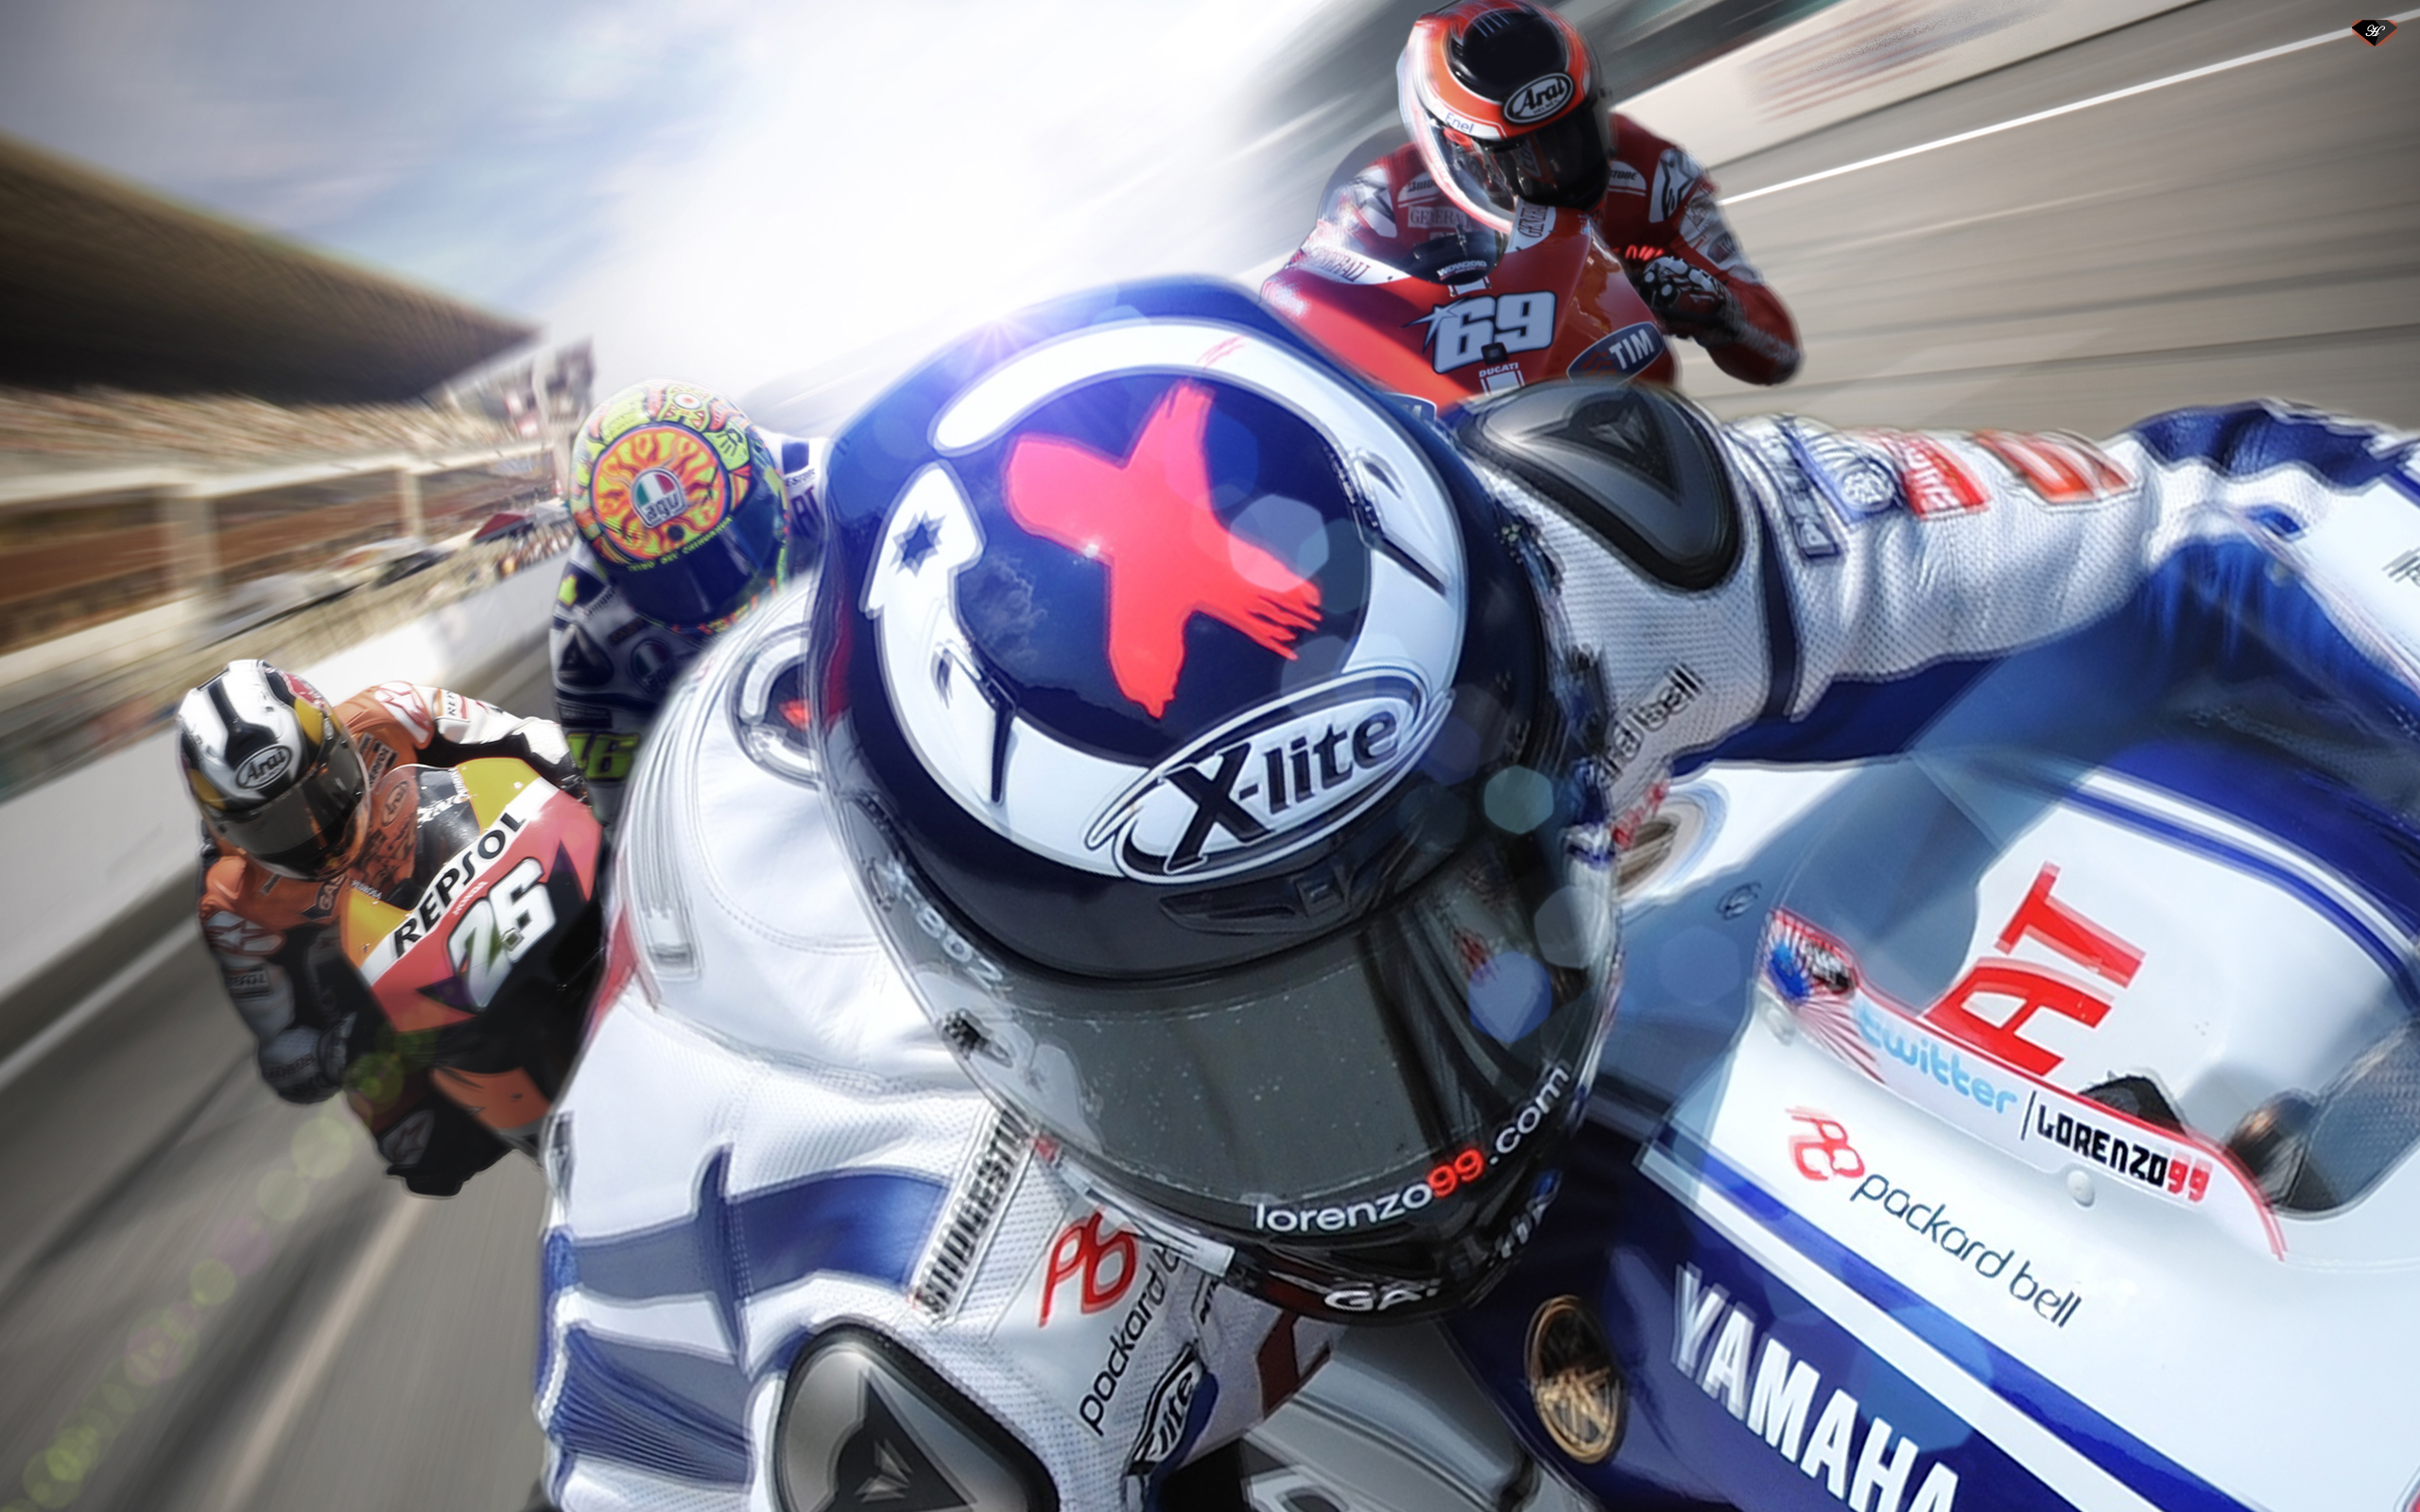 Motogp Wallpaper - impremedia.net